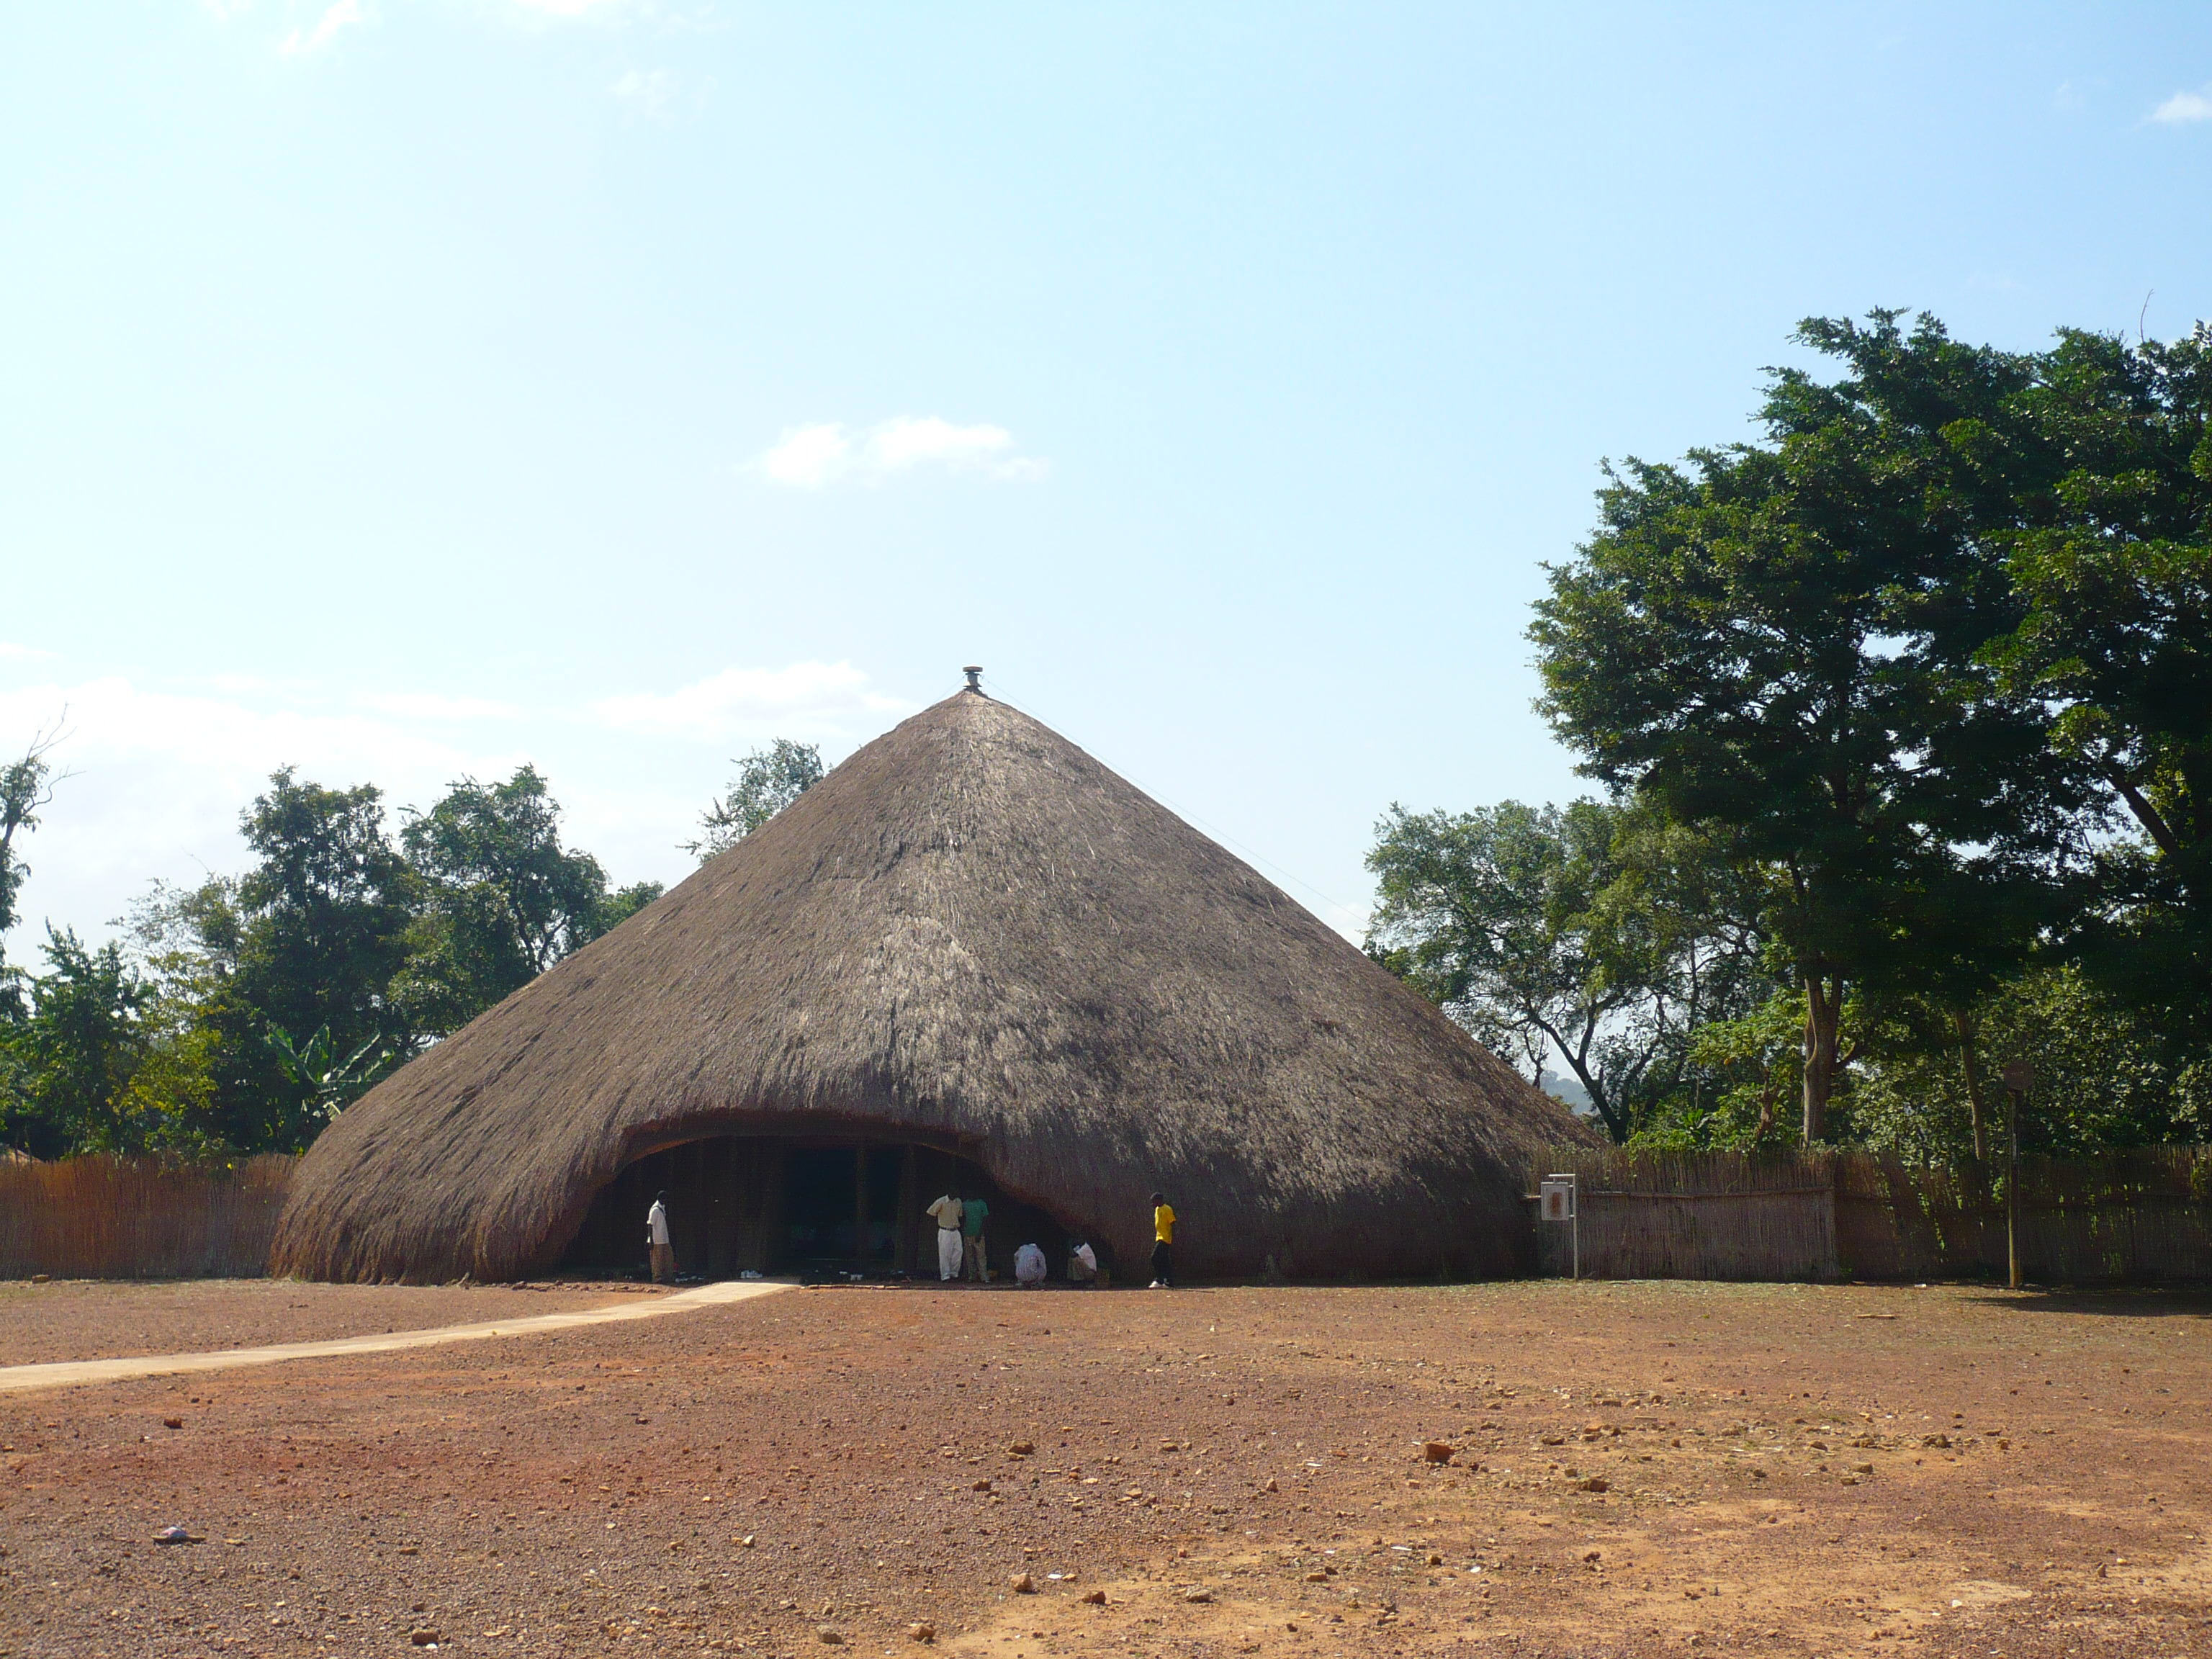 This large hut is somehow involved in the violence - don't ask me!